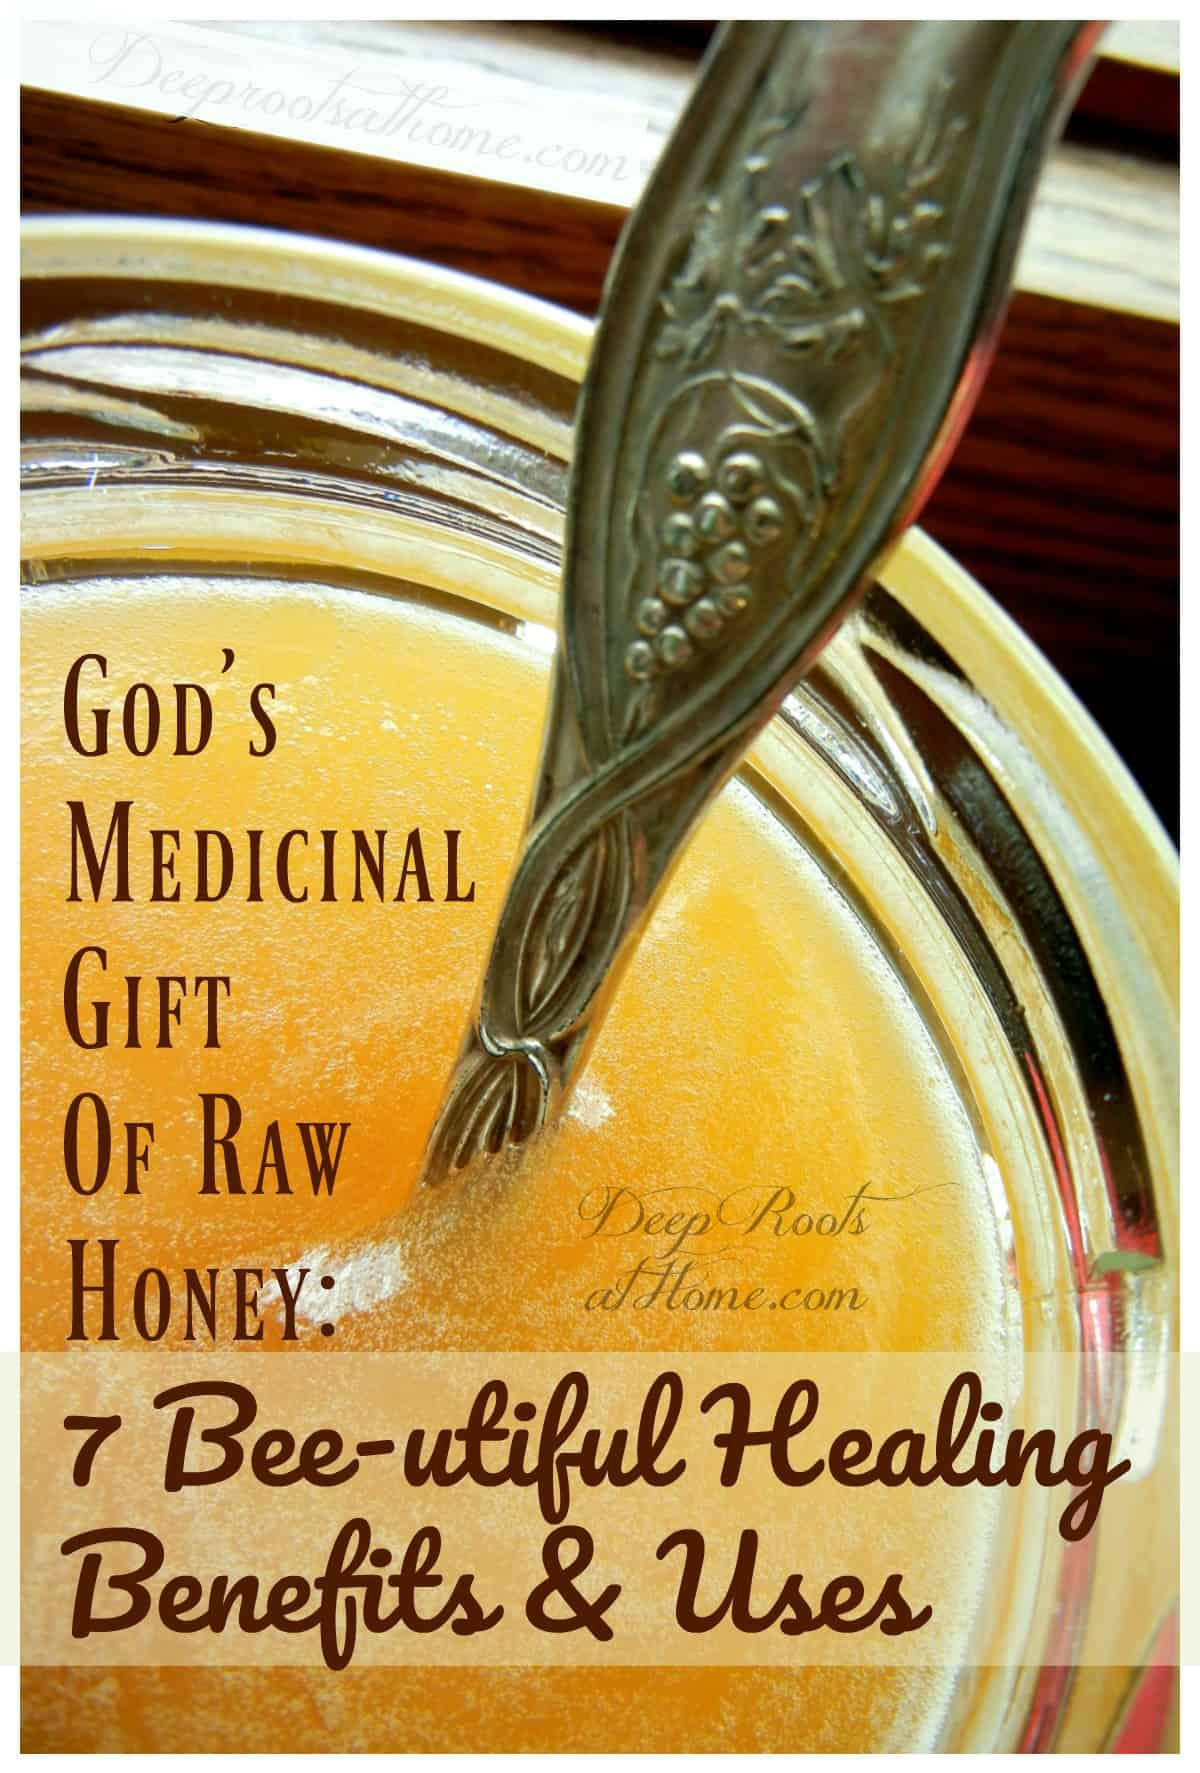 God's Medicinal Gift Of Raw Honey: 7 Bee-utiful Healing Benefits & Uses. A beautiful glass raw honey pot.